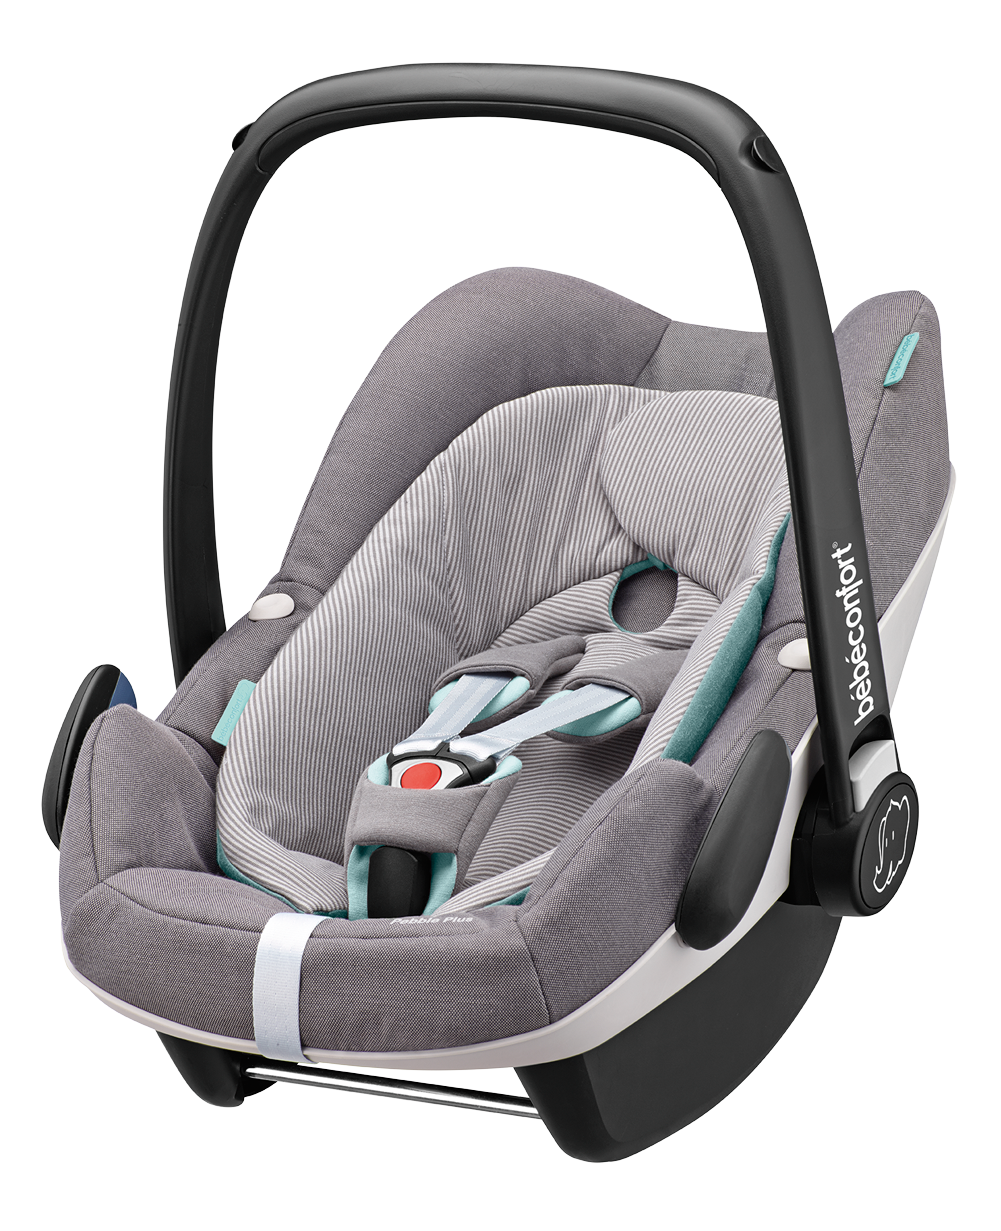 Seggiolino Auto i-Size Bébé Confort Pebble Plus Concrete Gray